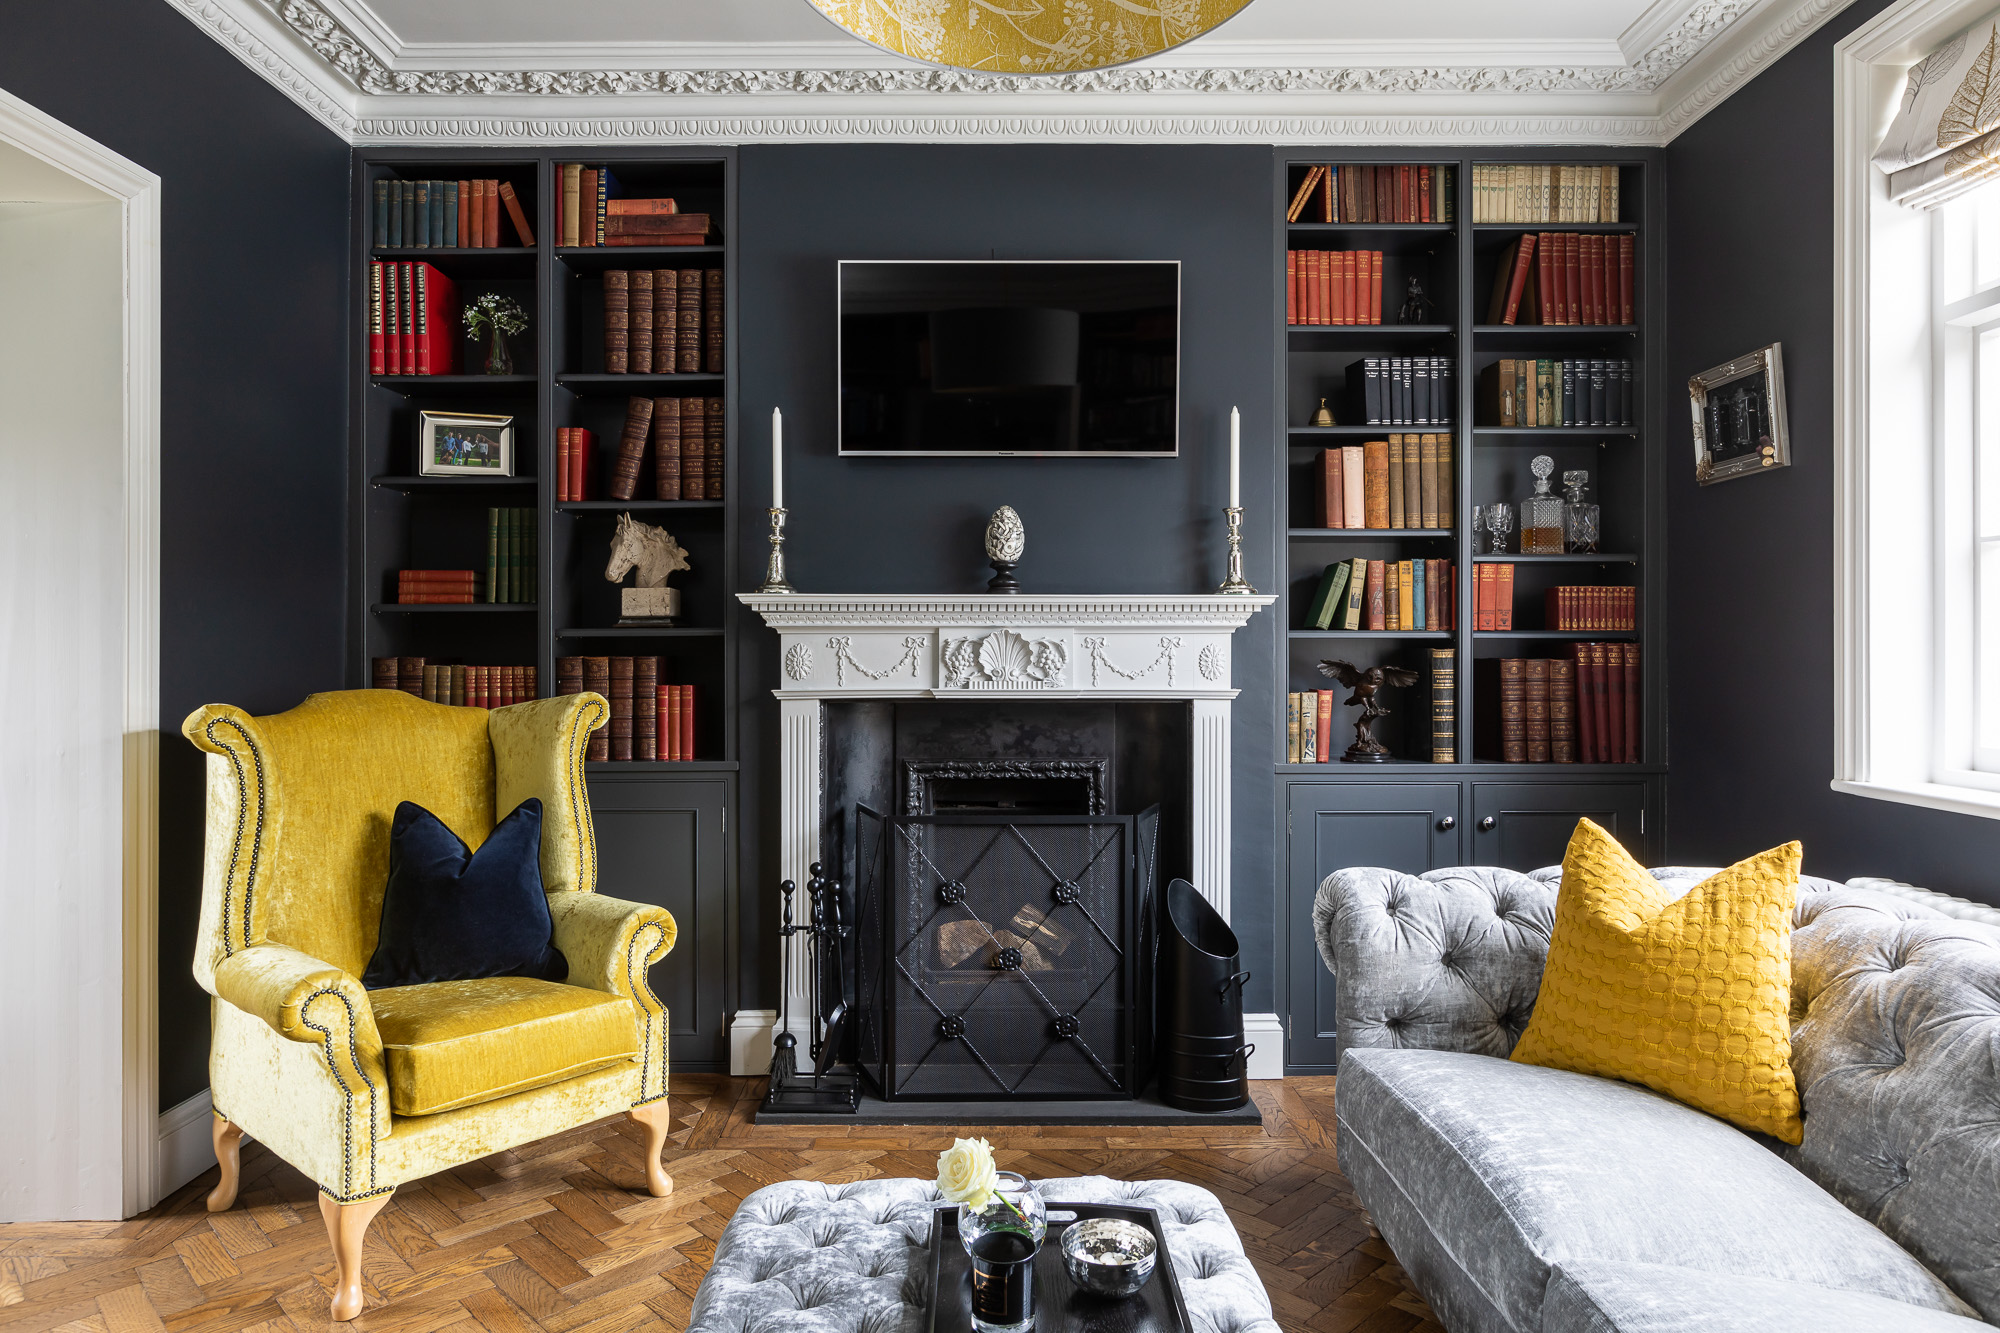 jonathan bond, interior photographer, ornate living room fireplace, harlow